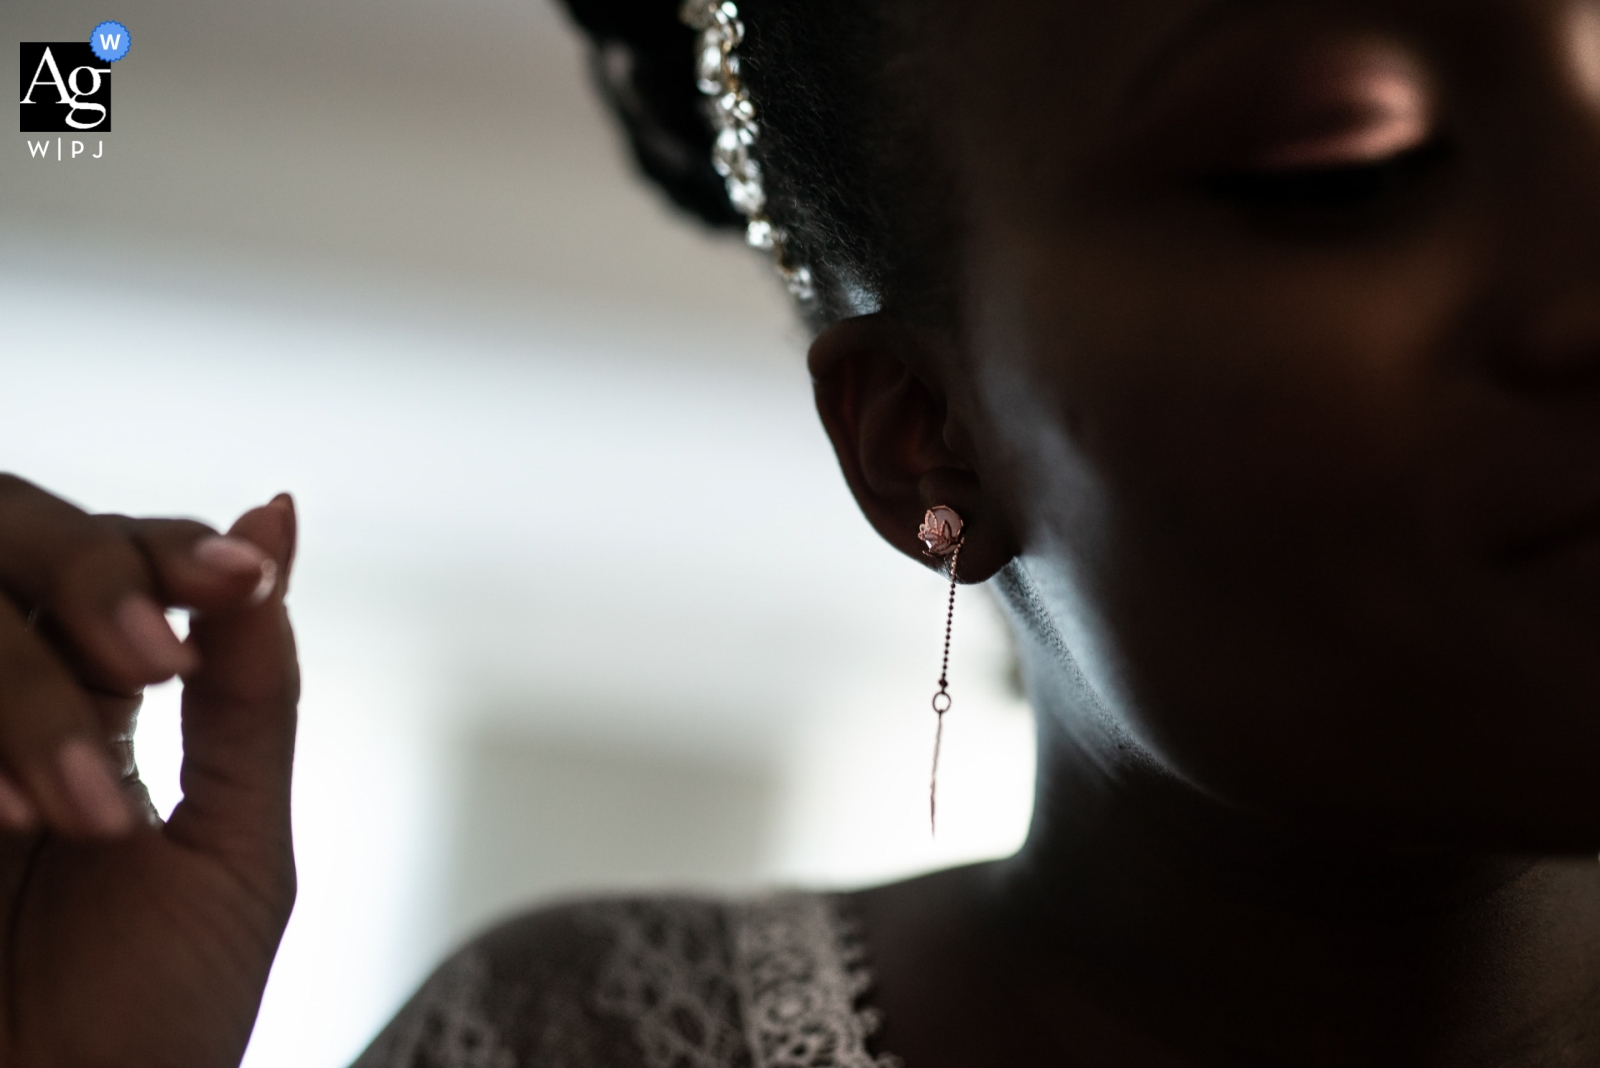 Domaine du Bessac (France) - Earring detail photography from the wedding day